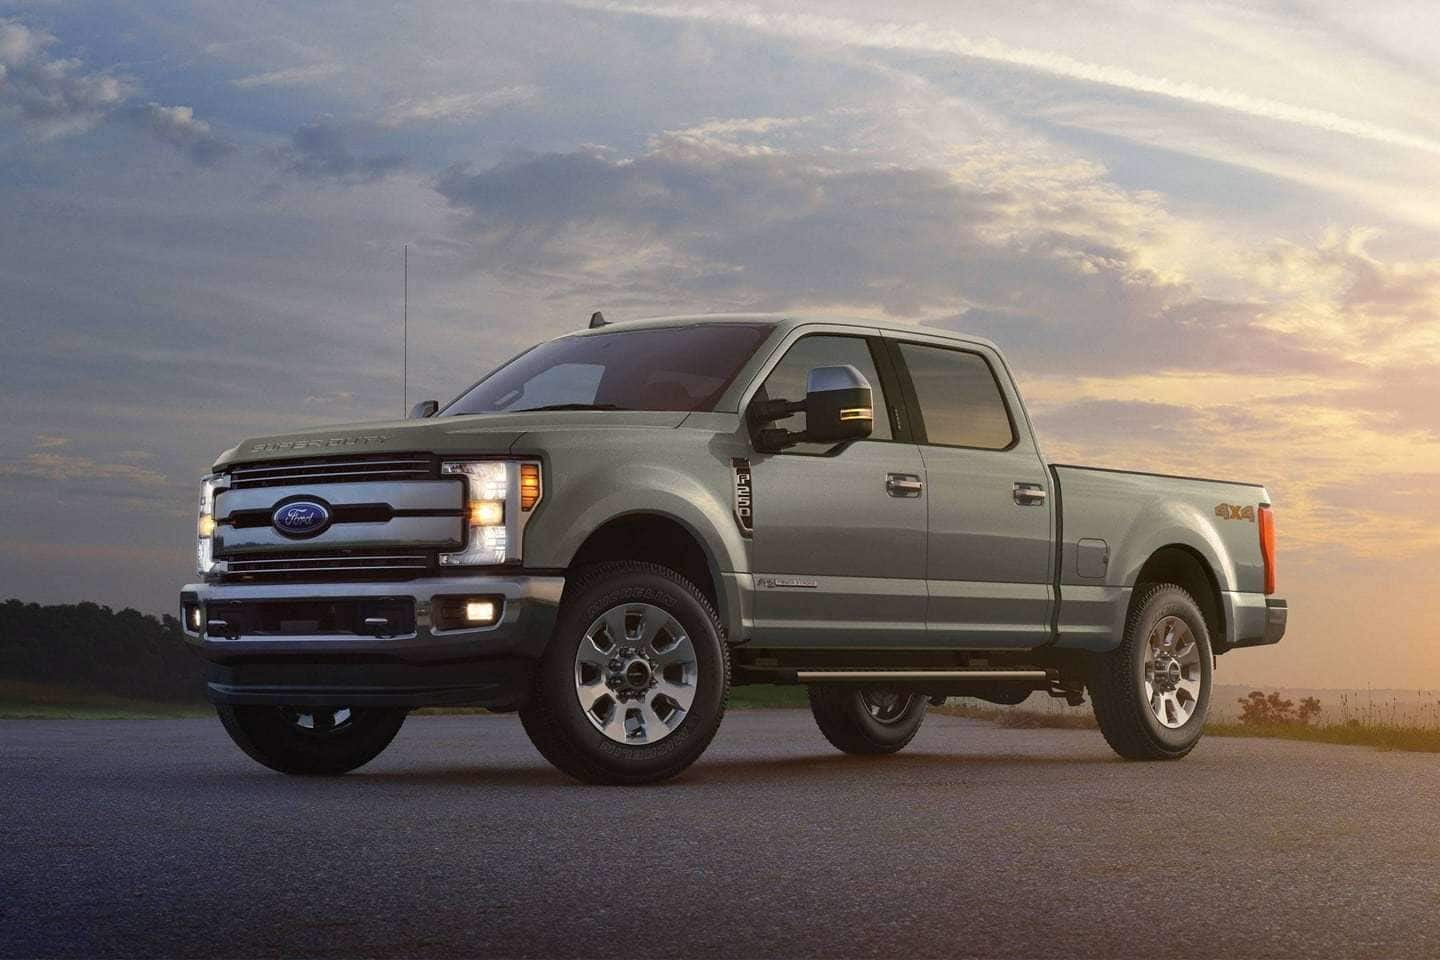 2019 Ford F-250 Interior & Technology Features